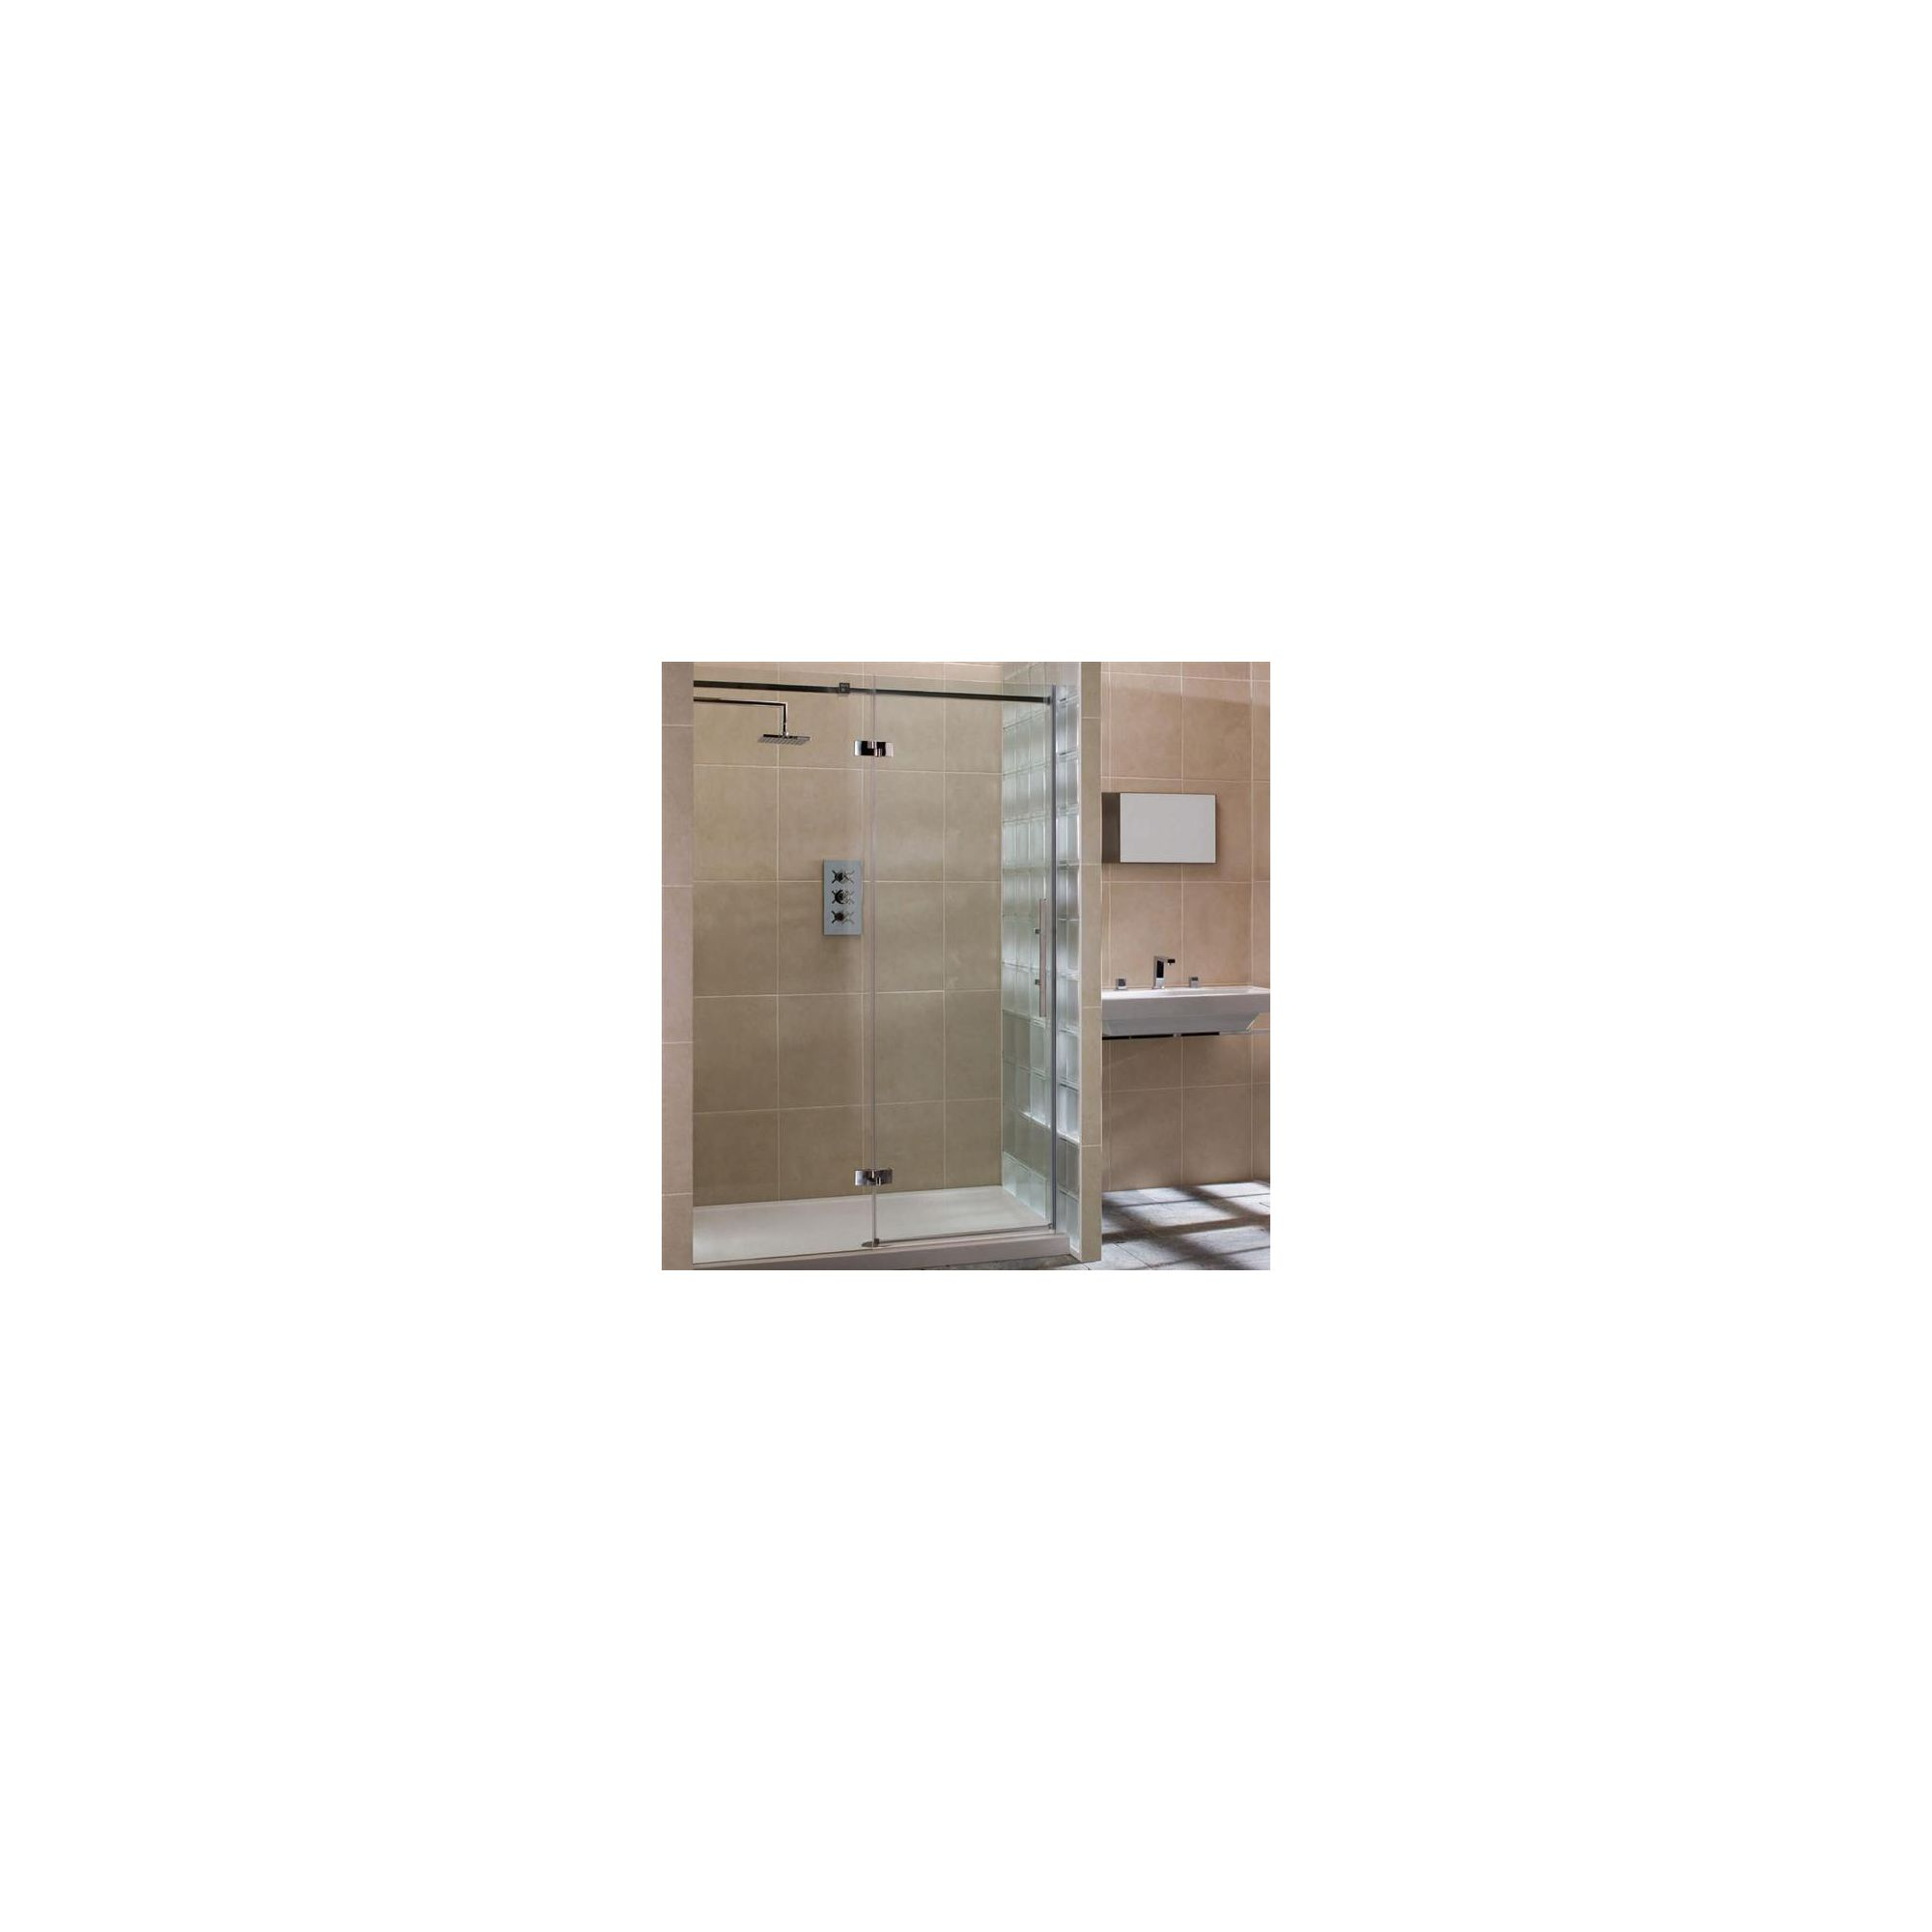 Merlyn Vivid Nine Hinged Door Alcove Shower Enclosure with Inline Panel, 1400mm x 900mm, Left Handed, Low Profile Tray, 8mm Glass at Tesco Direct